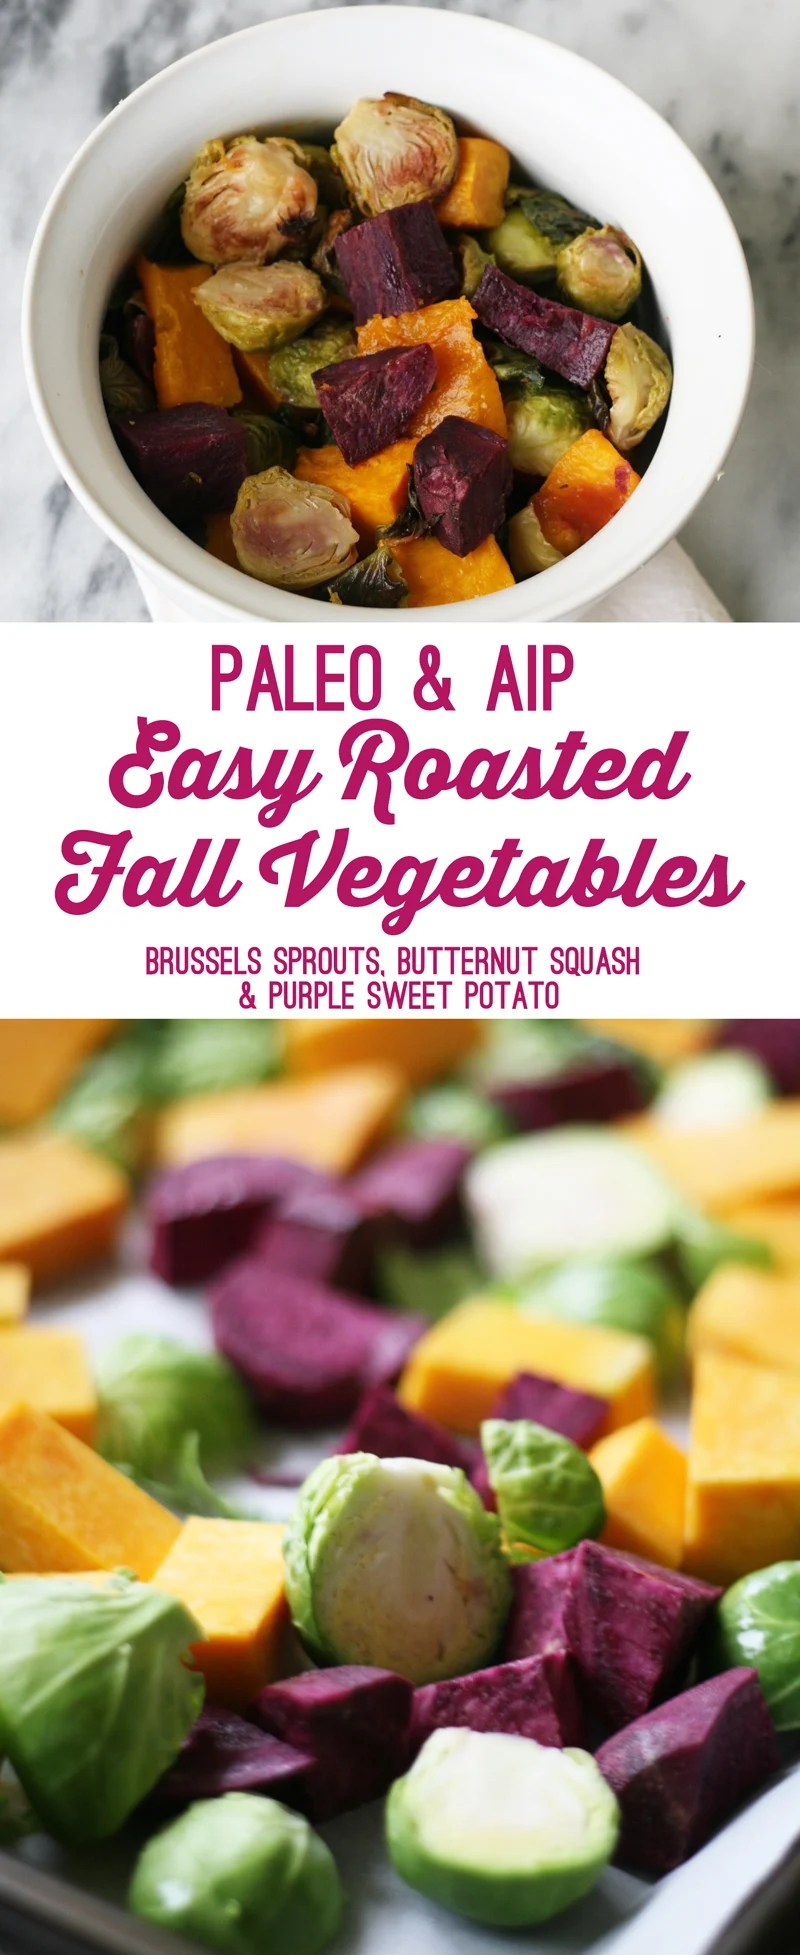 Easy Roasted Fall Vegetables (AIP, Paleo)